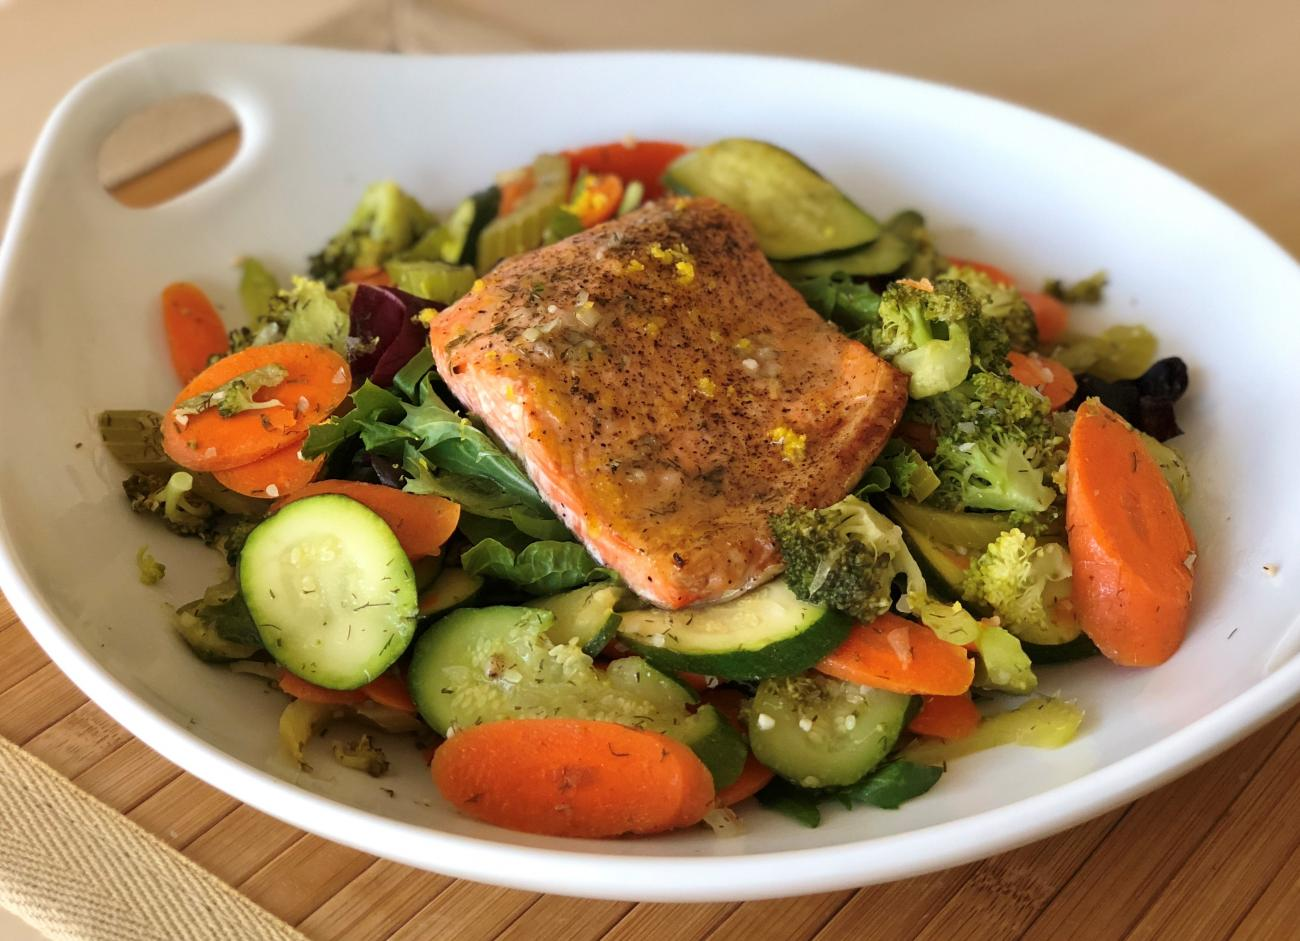 Marinated Vegetable Salad With Salmon